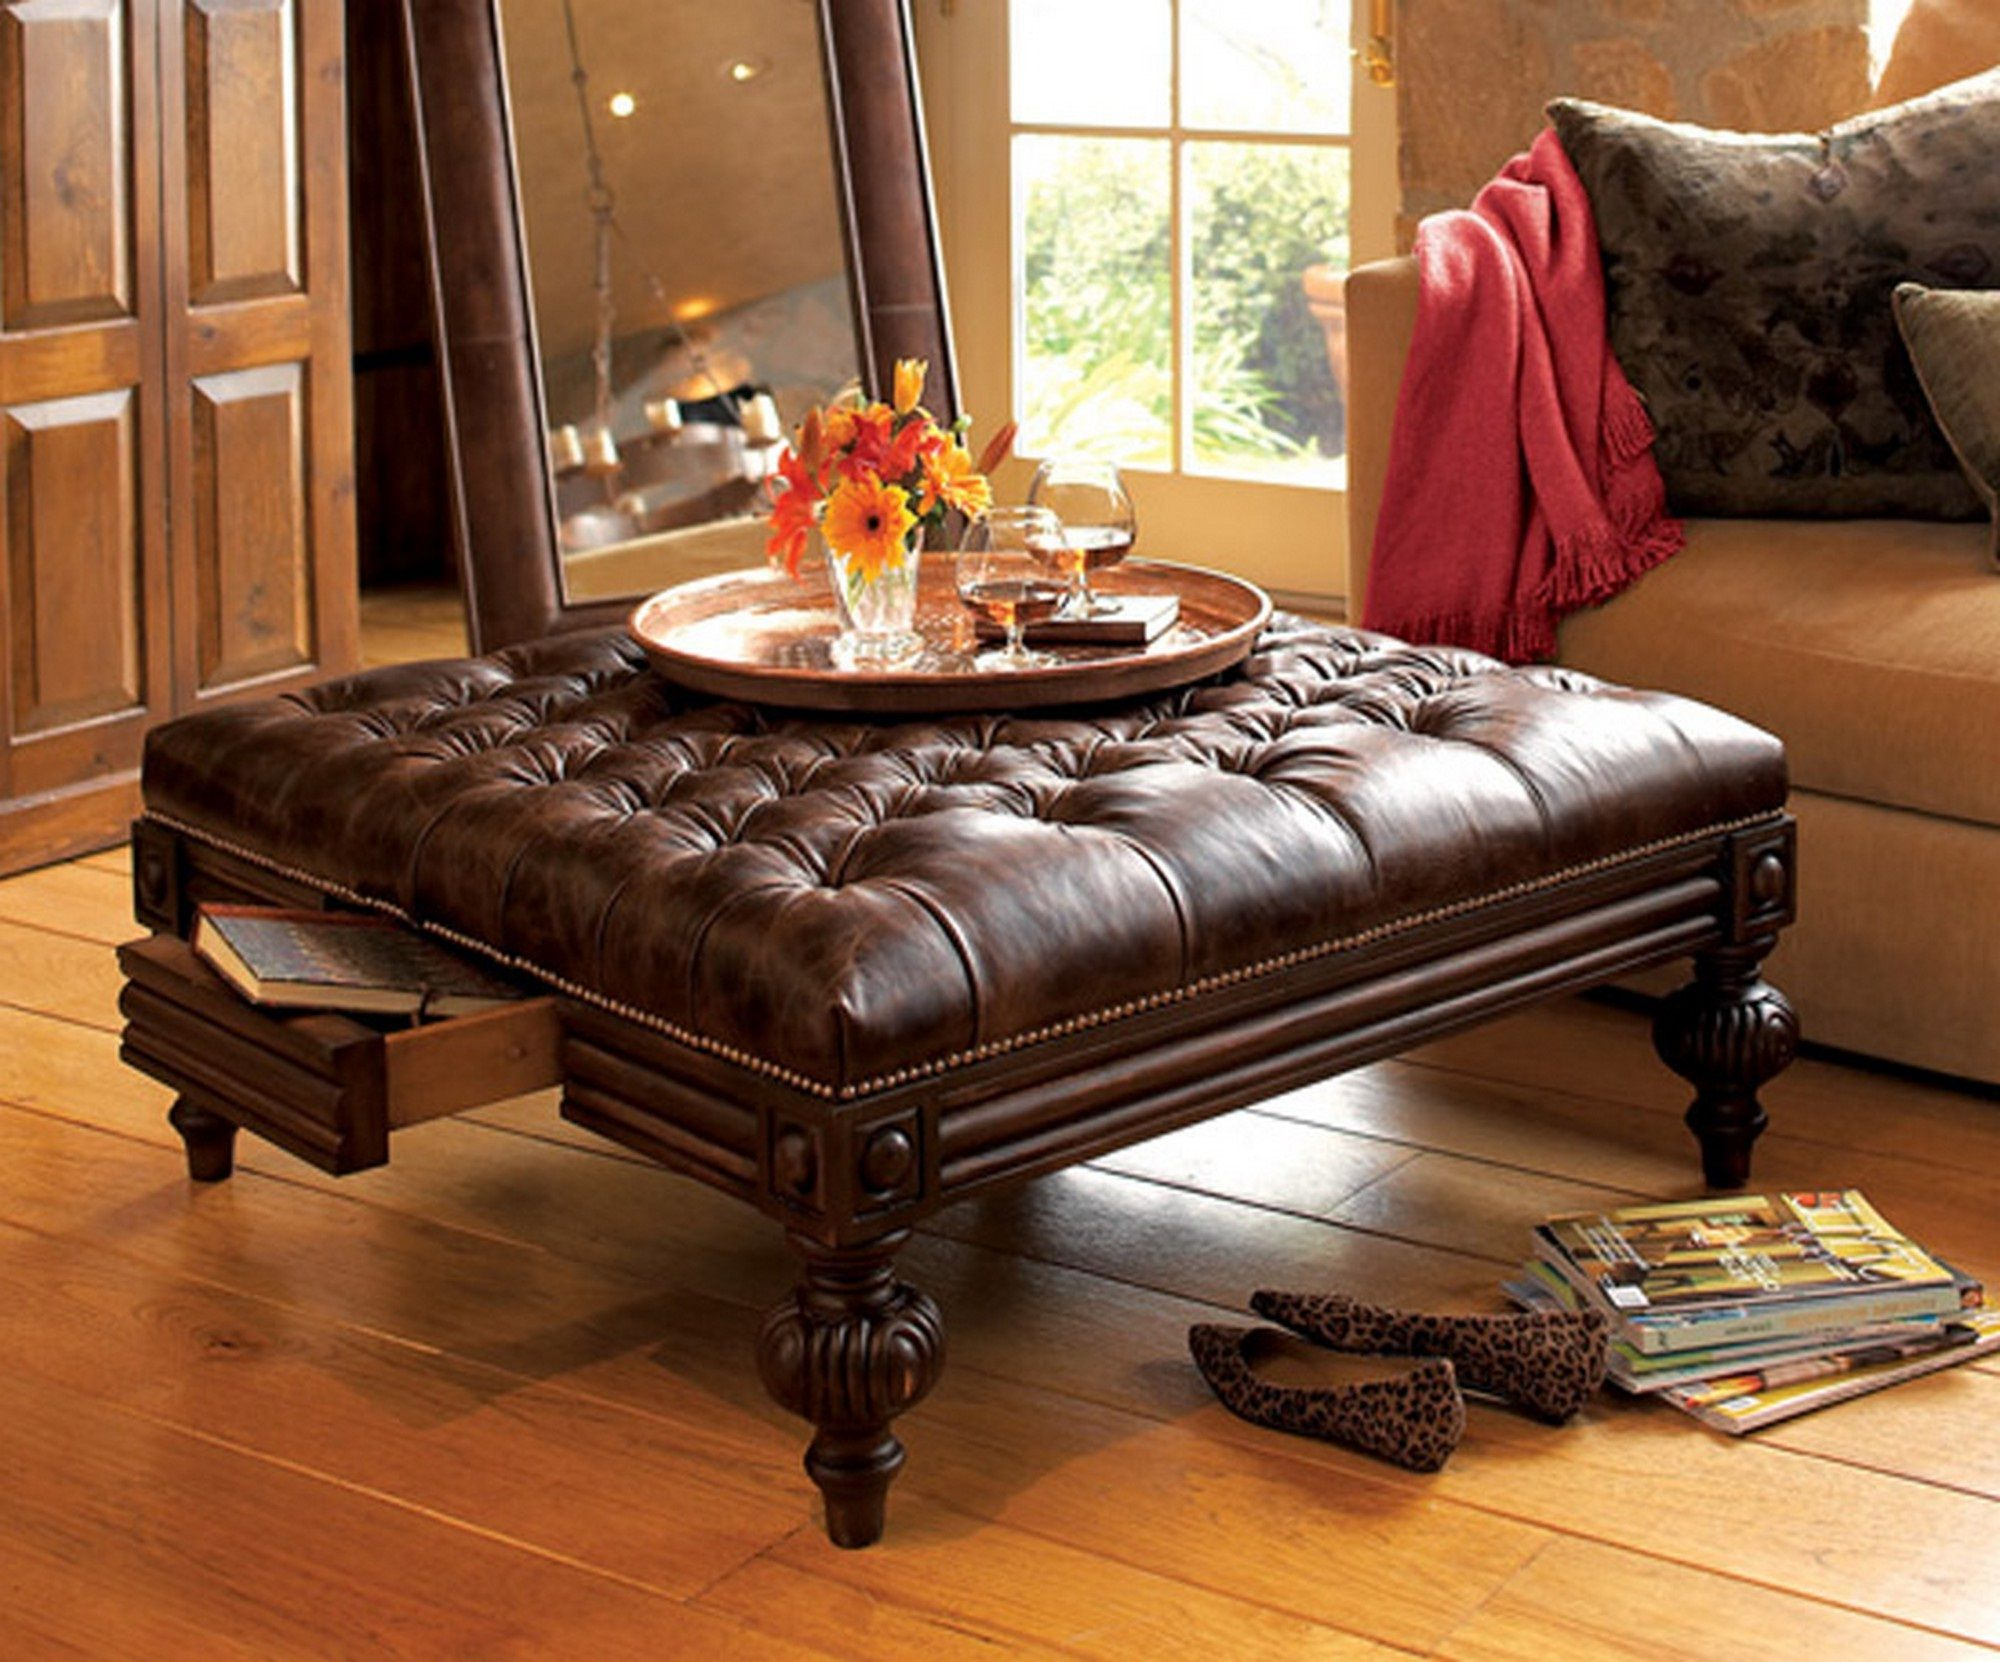 Large Round Leather Ottoman Coffee Table Download Full Size Of Coffee Table Leather Ottoman Coffee Table Large Ottoman Coffee Table Round Ottoman Coffee Table [ 1662 x 2000 Pixel ]